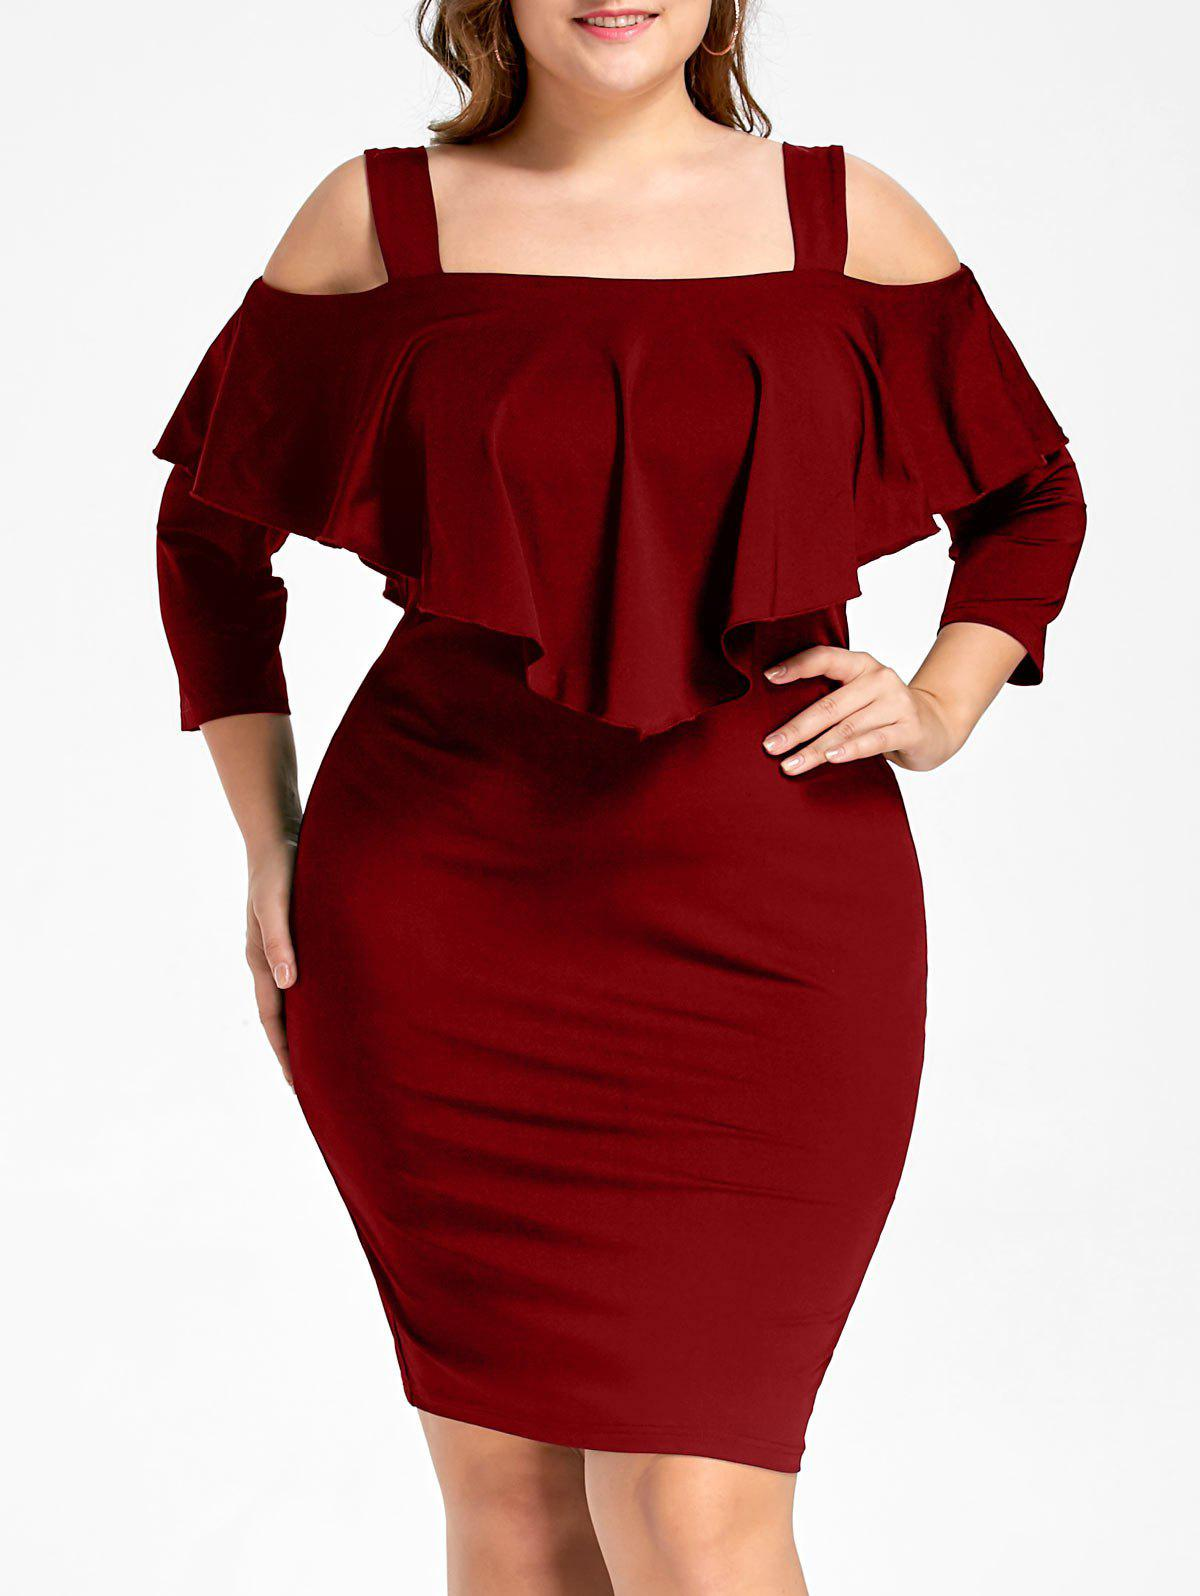 Plus Size Overlay Cold Shoulder Fitted DressWOMEN<br><br>Size: 2XL; Color: WINE RED; Style: Brief; Material: Polyester; Silhouette: Sheath; Dresses Length: Knee-Length; Neckline: Square Collar; Sleeve Length: 3/4 Length Sleeves; Pattern Type: Solid Color; With Belt: No; Season: Fall,Spring; Weight: 0.3700kg; Package Contents: 1 x Dress;